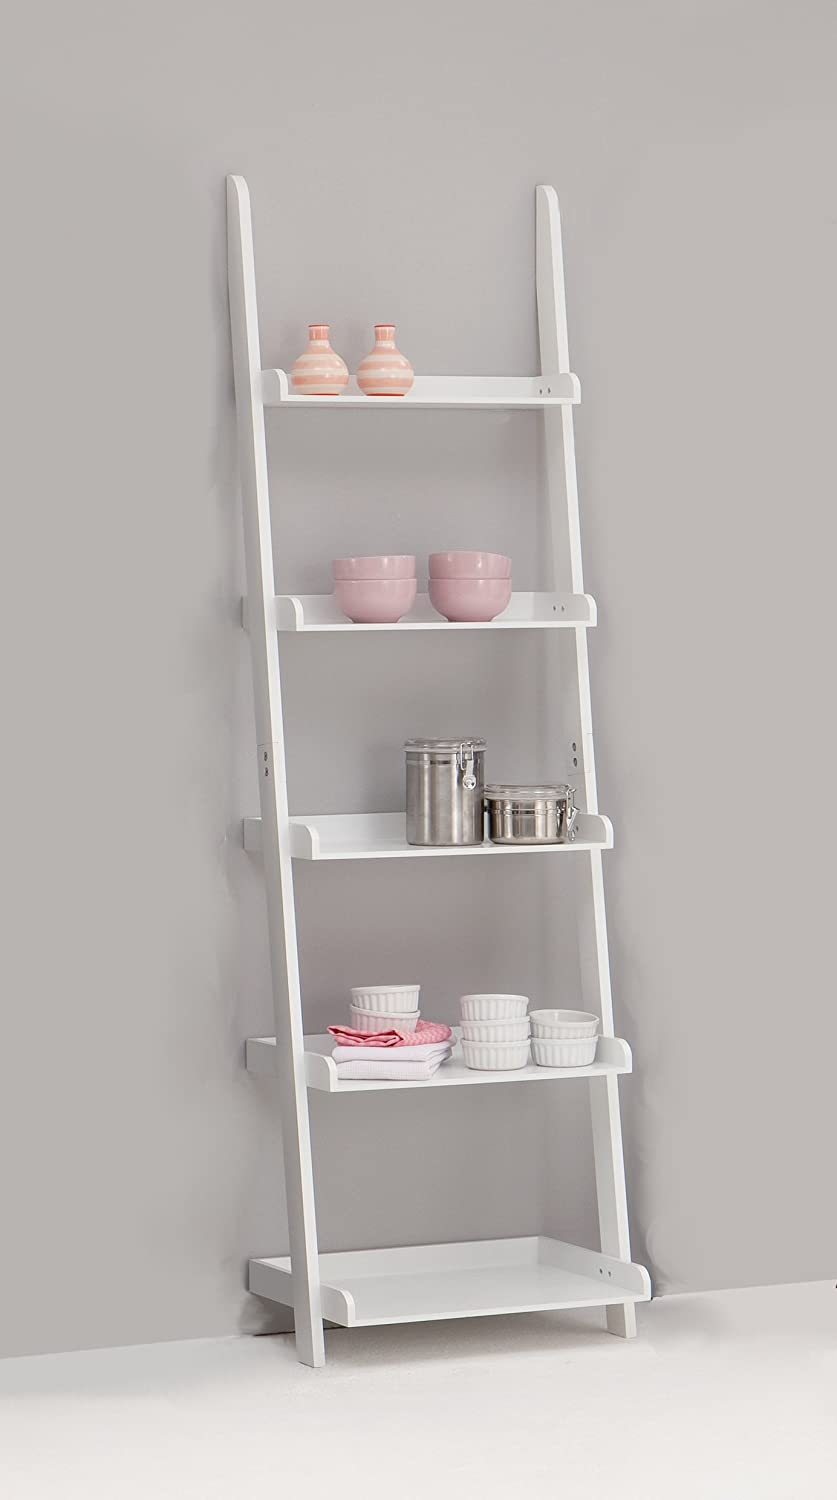 LEITERN White 5-Tiered Ladder Shelf Bookcase Display Unit: Amazon.co ...